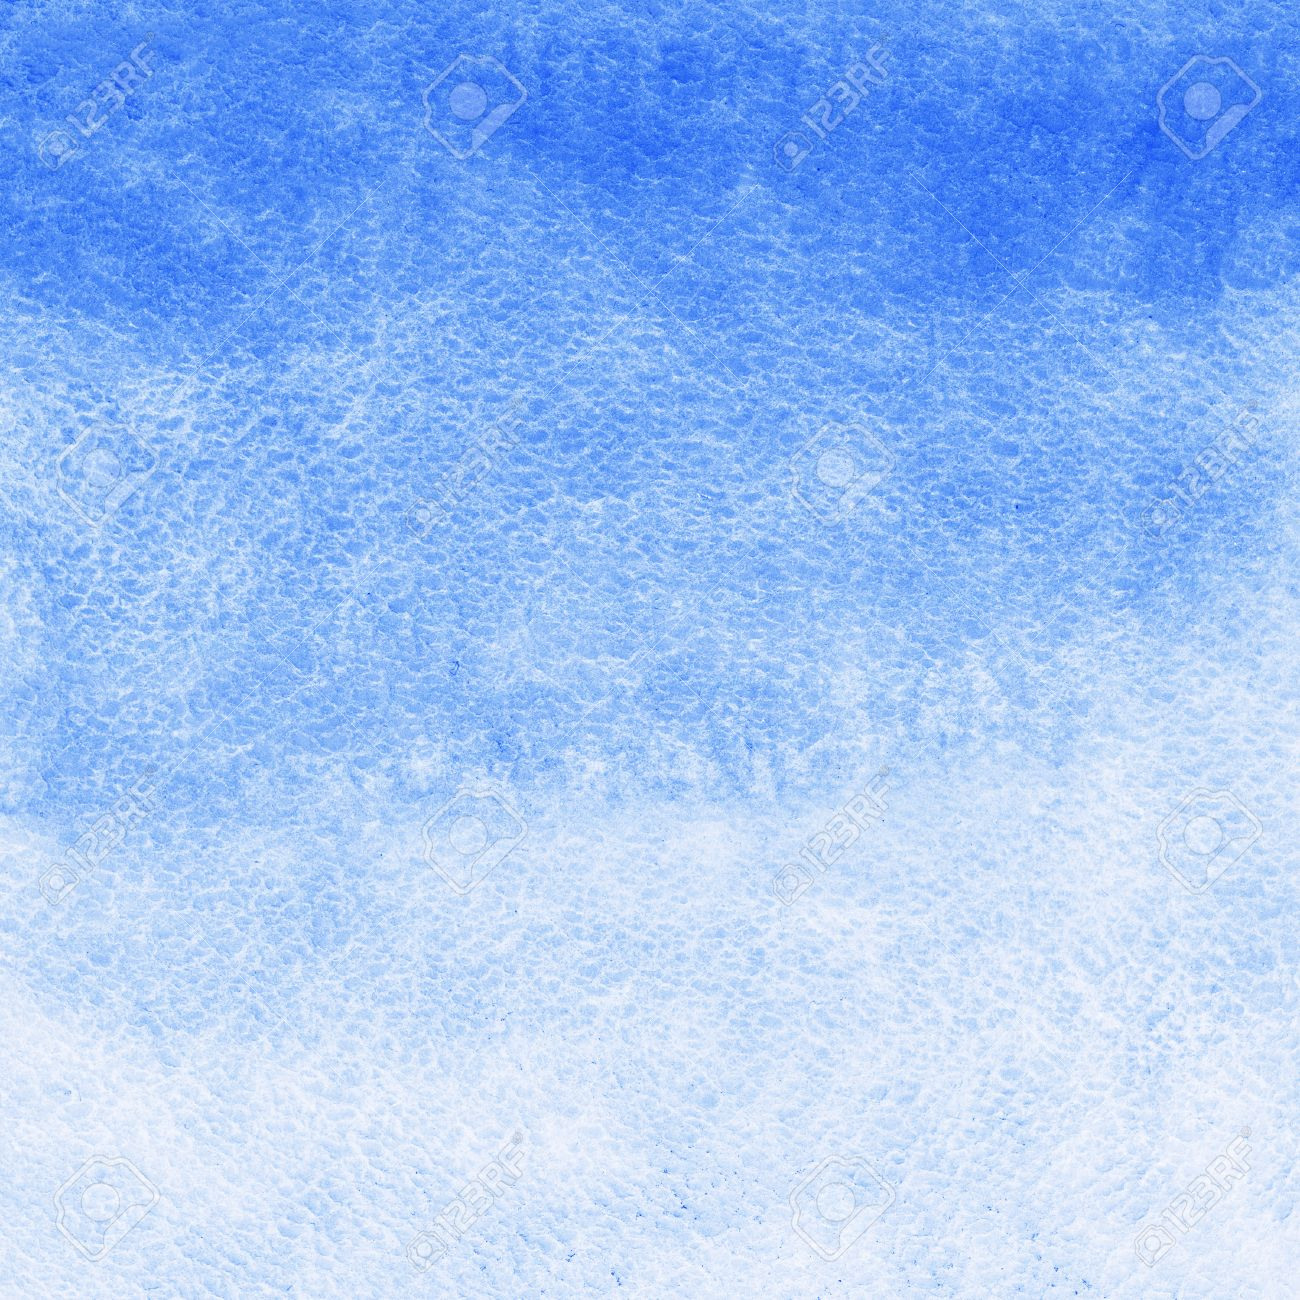 Cobalt Pastel Blue Watercolor Abstract Background Gradient Fill Stock Photo Picture And Royalty Free Image Image 48132817